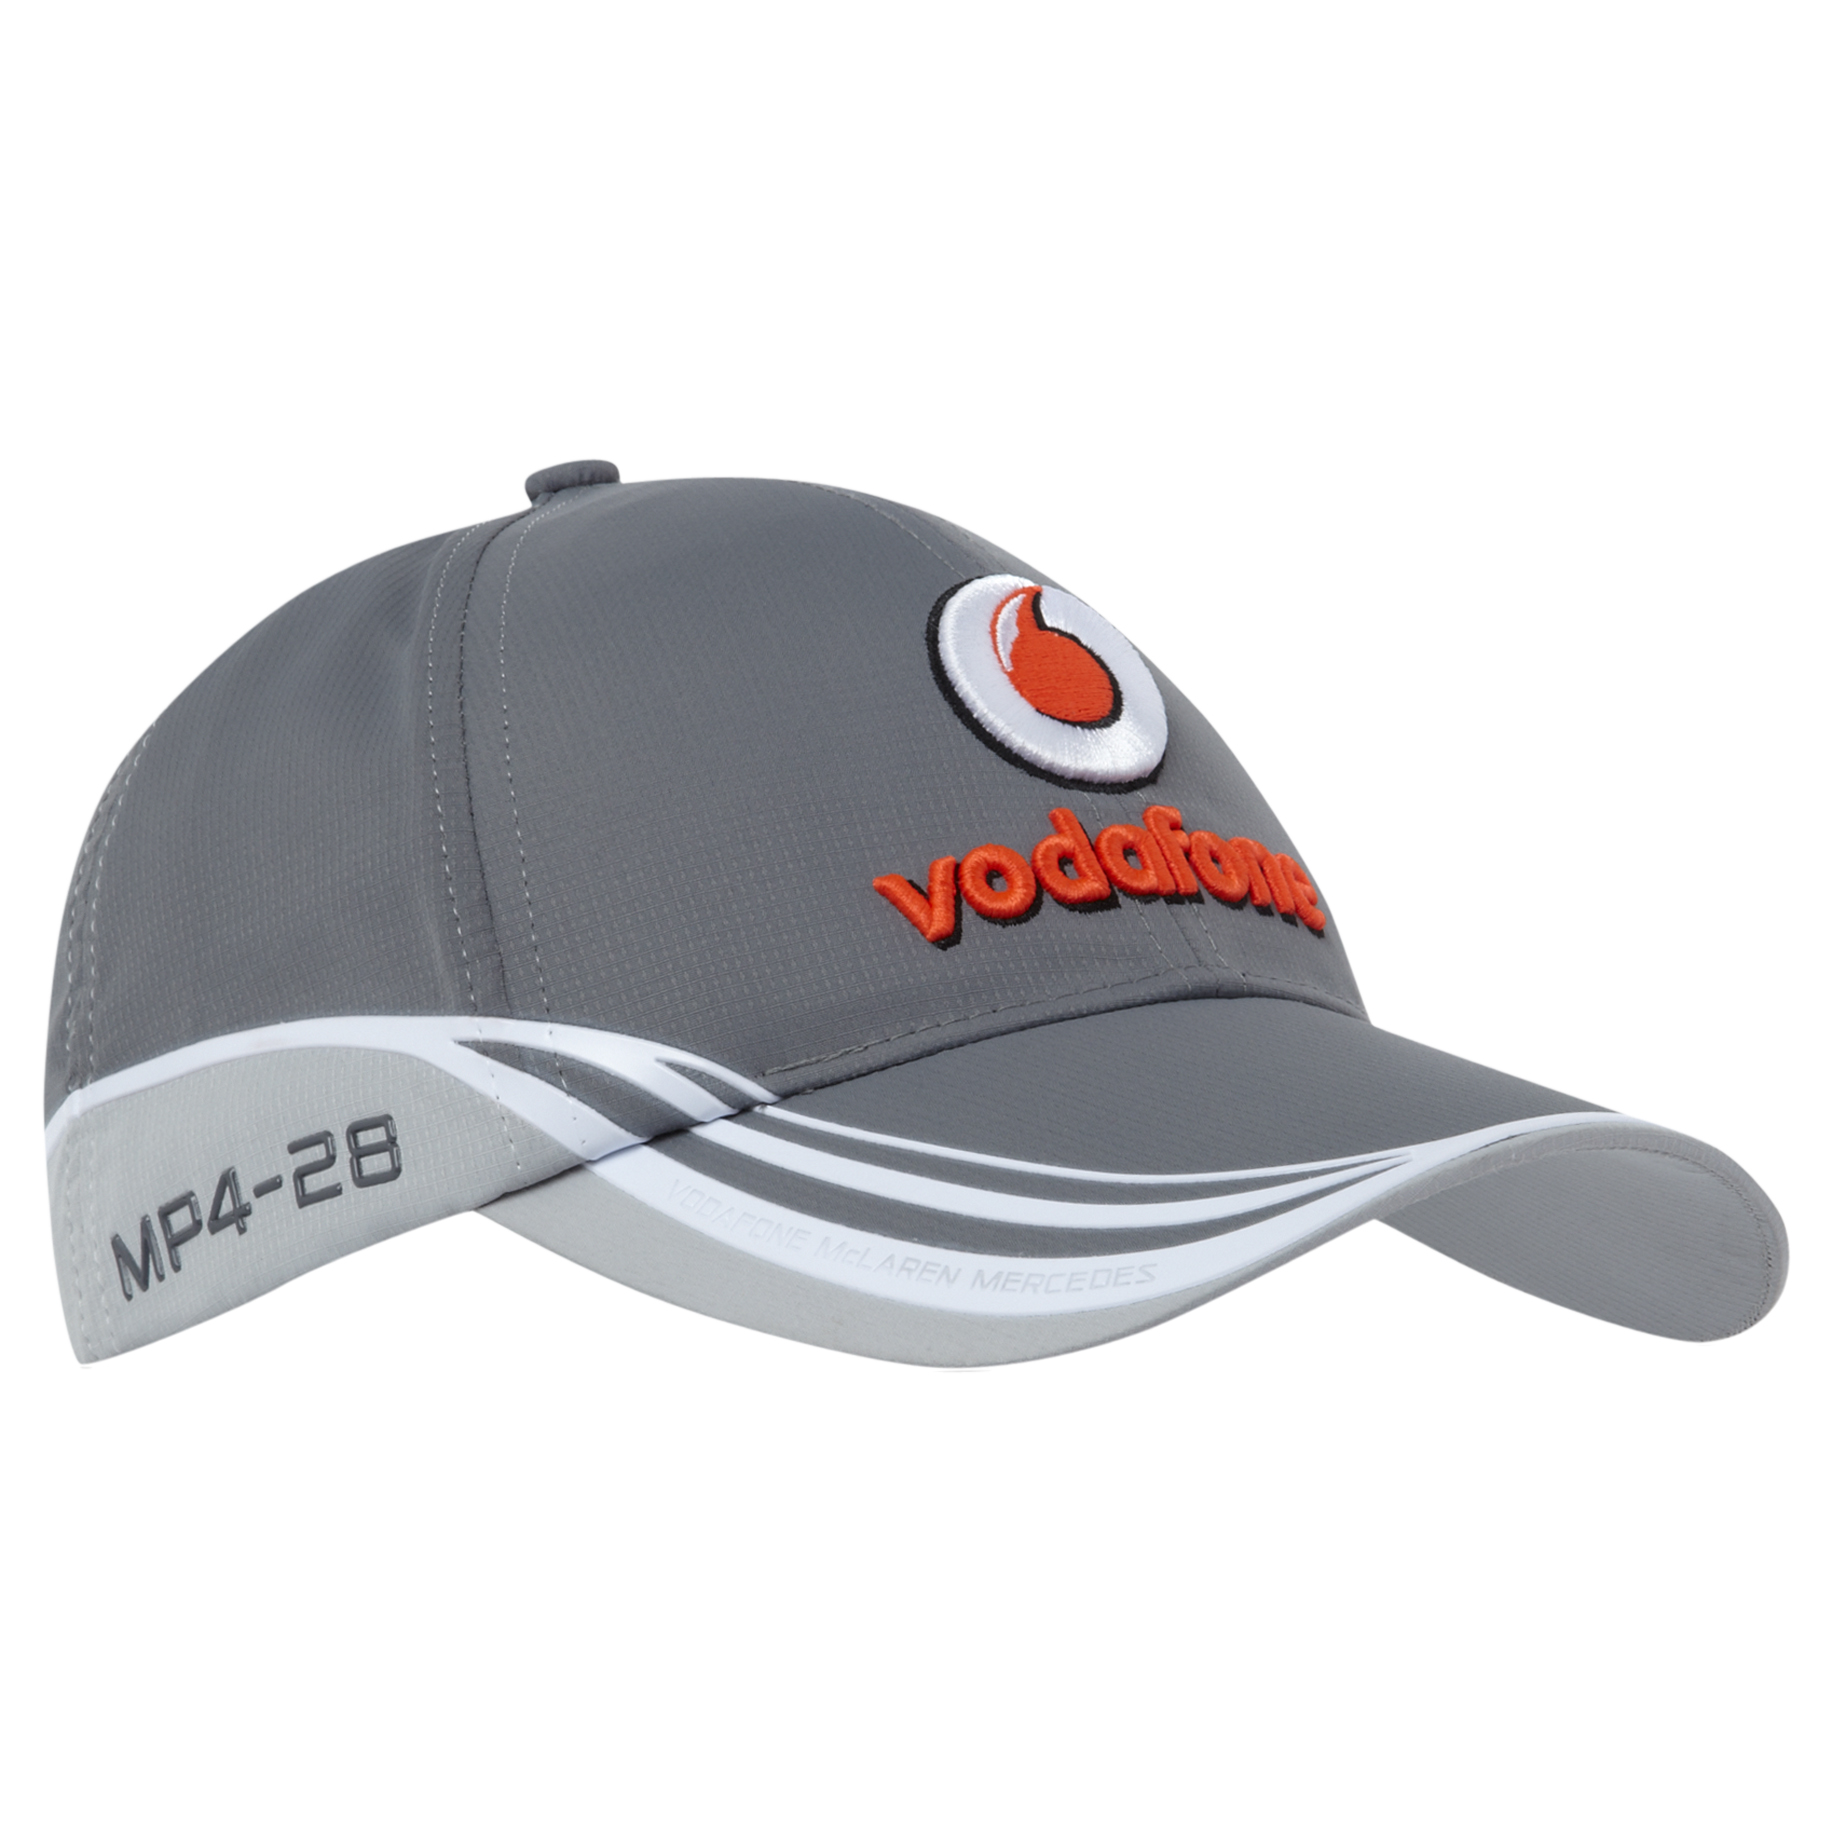 Vodafone McLaren Mercedes 2013 Team Cap